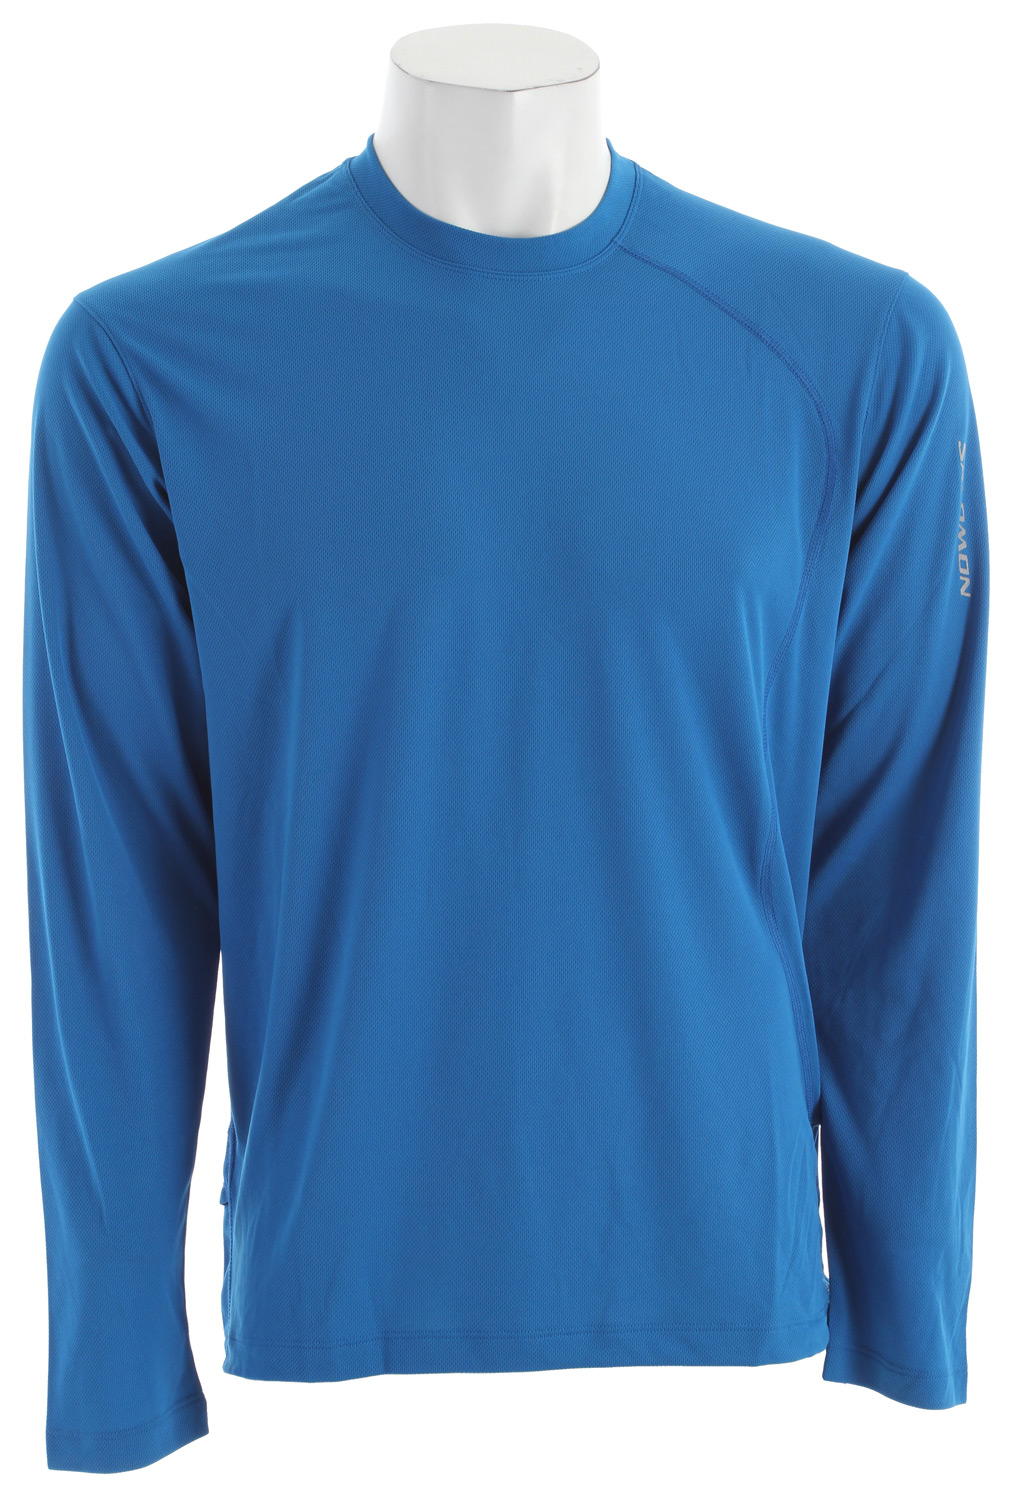 Fitness Relaxed fitting, versatile tee for running and outdoor sports with stretch actiLITE fabric.Key Features of the Salomon Trail III L/S Baselayer Top: SMART SKIN Flatlock seams Reflective branding front & back Stash Pocket actiLITE poly mock eyelet FIT: Relax fit Weight 110 COMPOSITION BODY: PES 100% - $28.95